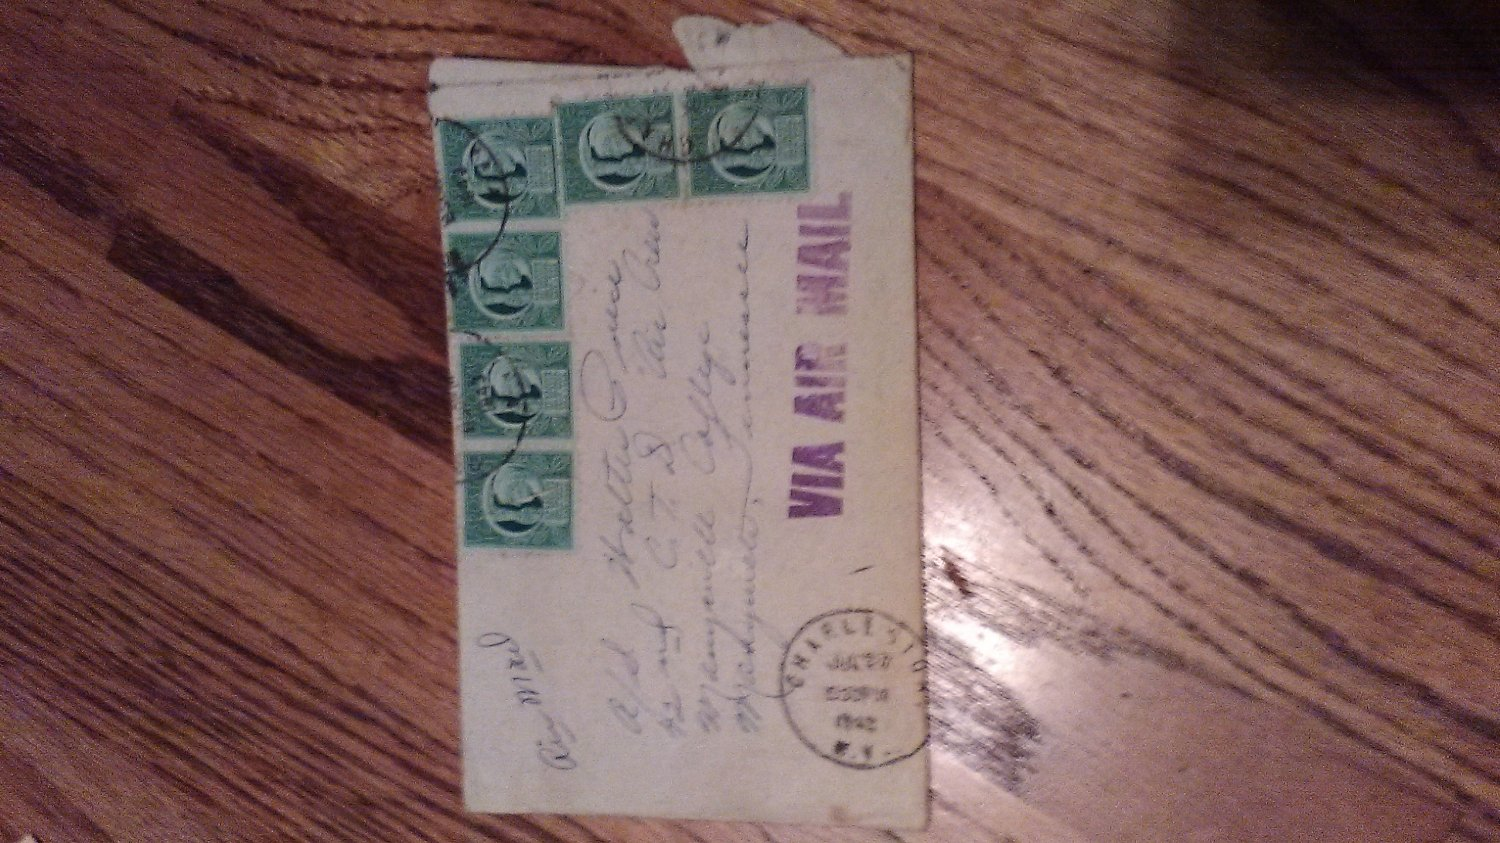 United States Airmail Stamp 1/2 price